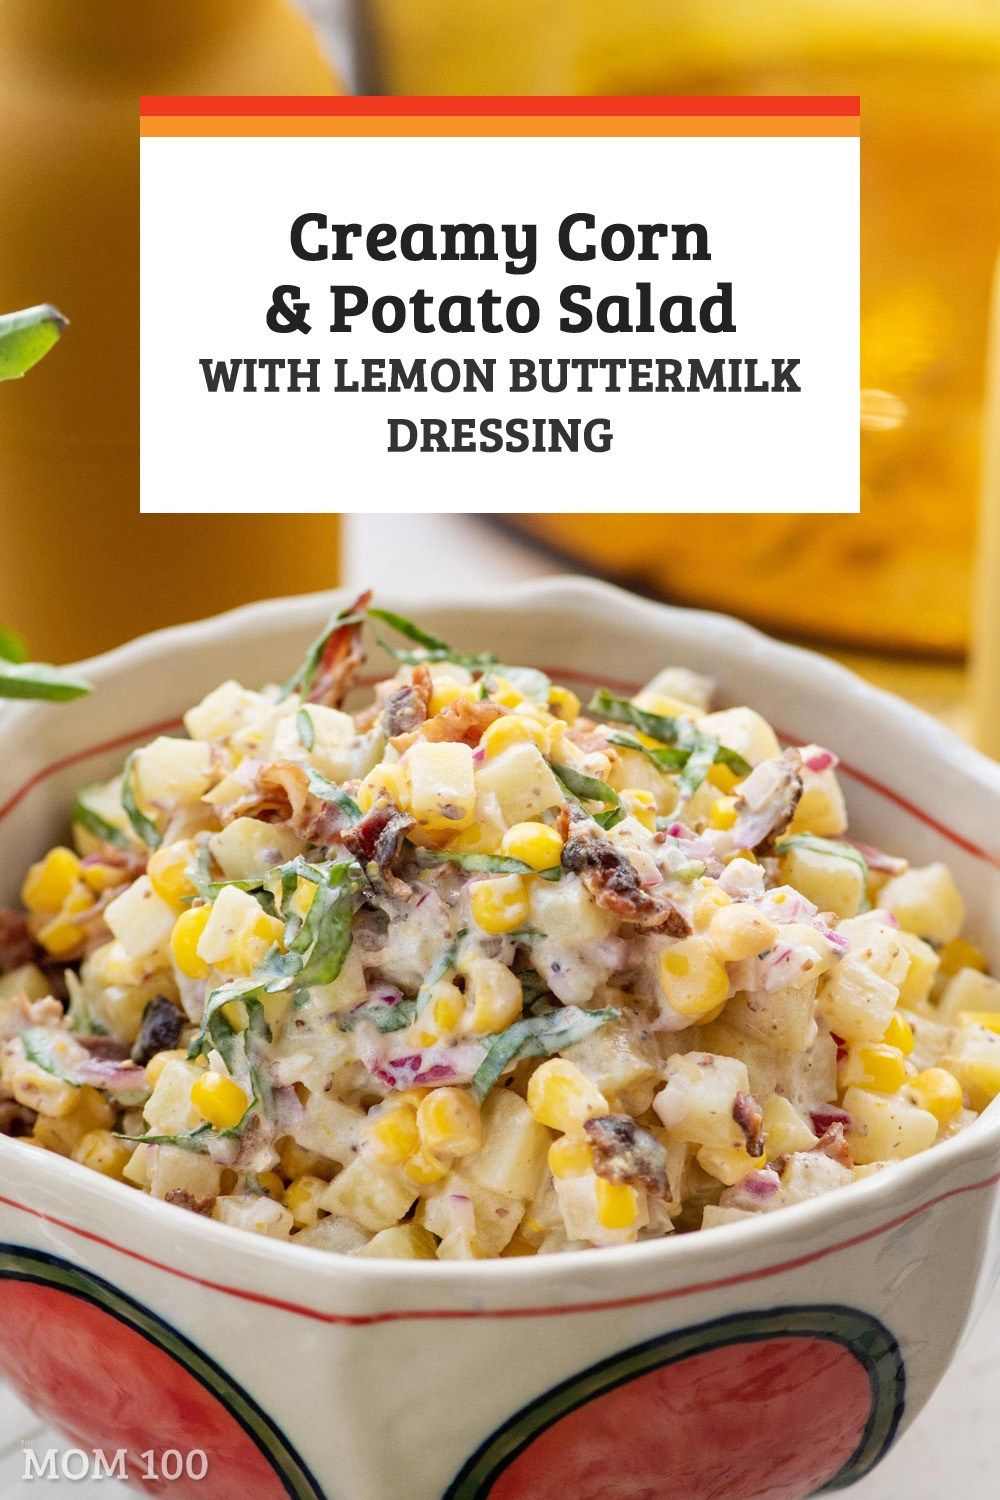 Creamy Corn And Potato Salad With Lemon Buttermilk Dressing The Creaminess Of The Potatoes Is Punctuated By Th Homemade Potato Salads Potato Salad Creamy Corn